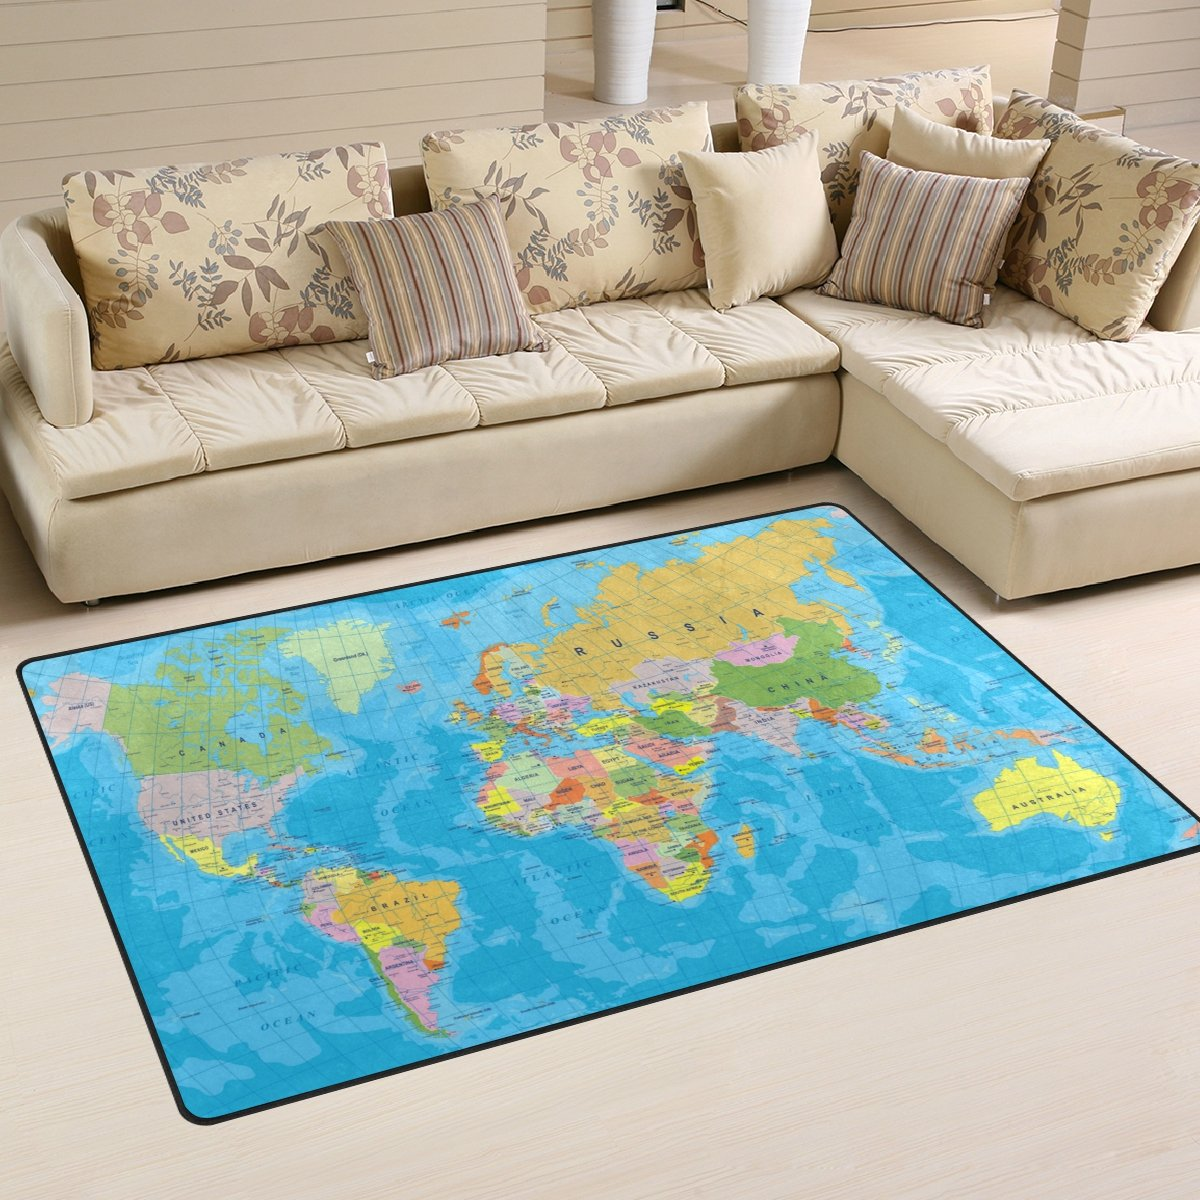 Naanle Watercolor World Map Non Slip Area Rug for Living Dinning Room Bedroom Kitchen, 50 x 80 cm(1.7' x 2.6' ft), Education Educational Nursery Rug Floor Carpet Yoga Mat